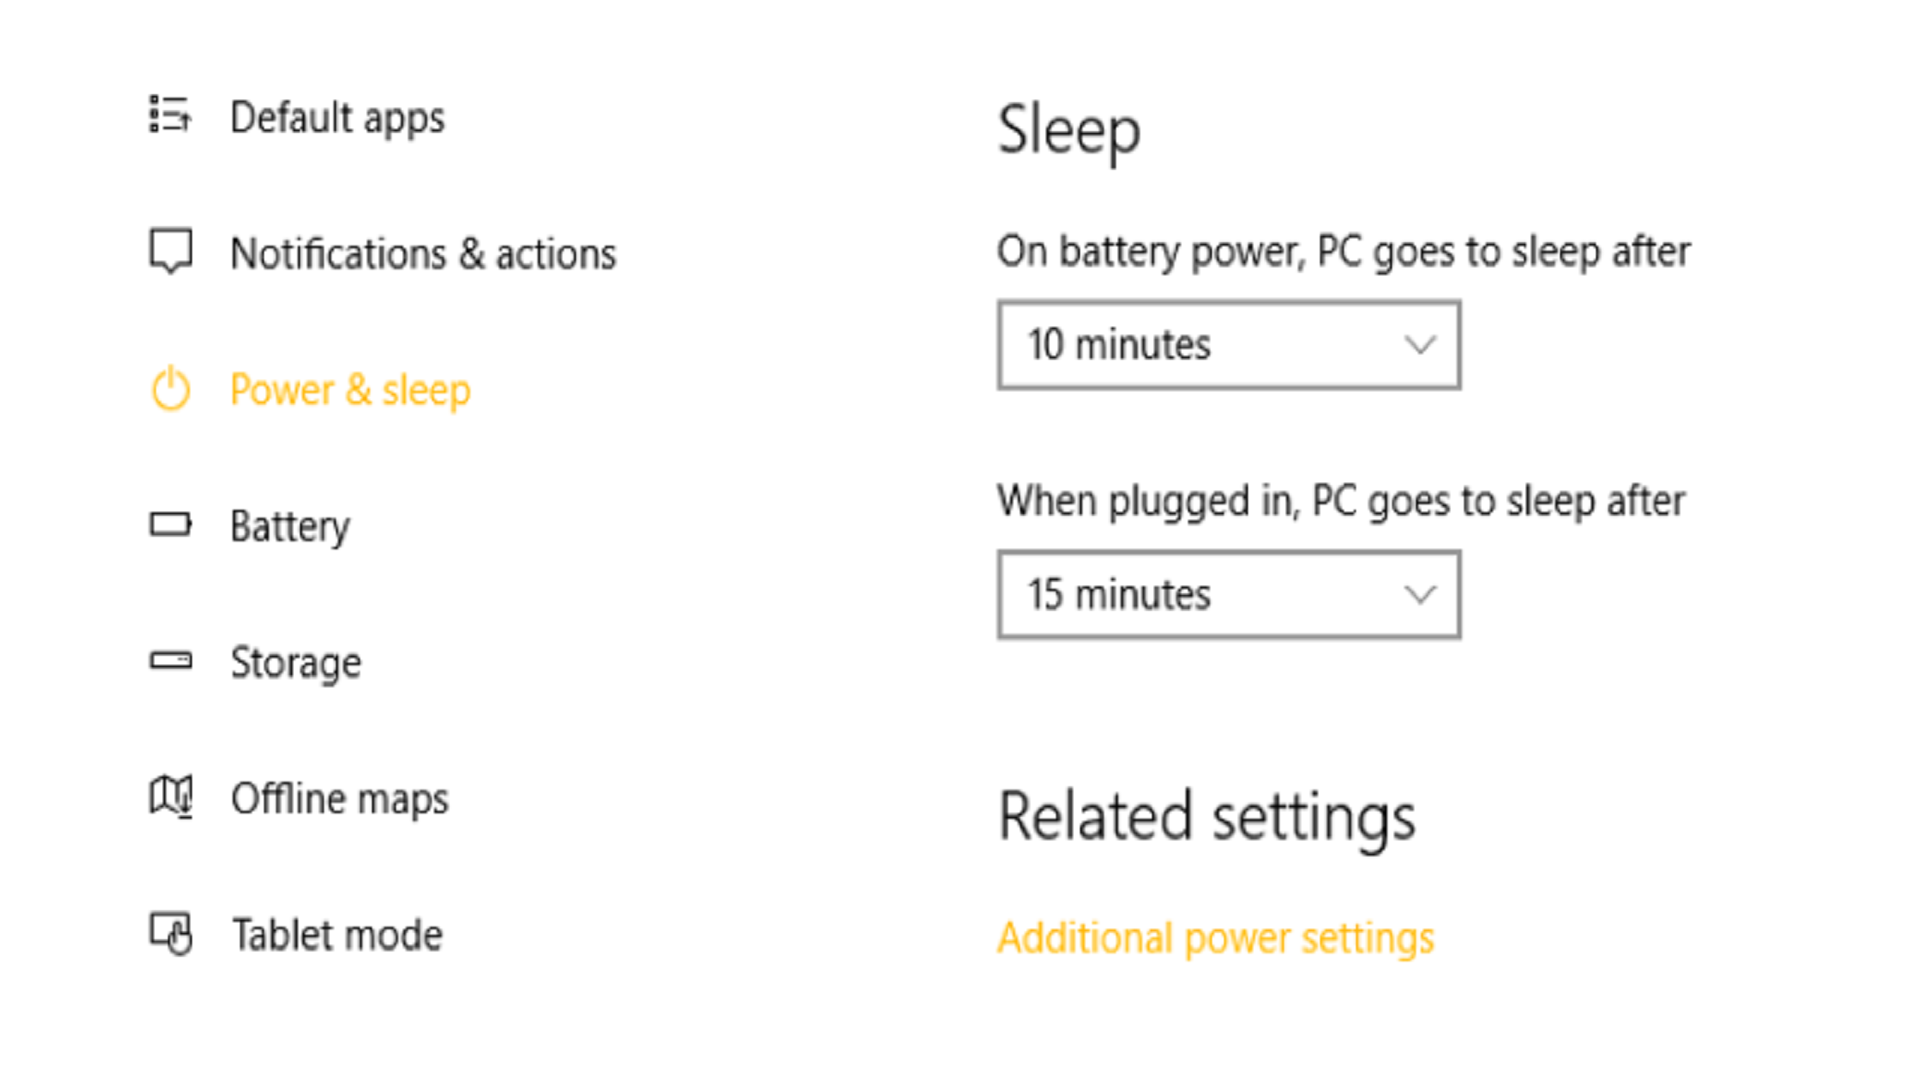 Windows-10-Computer-Wont-Sleep